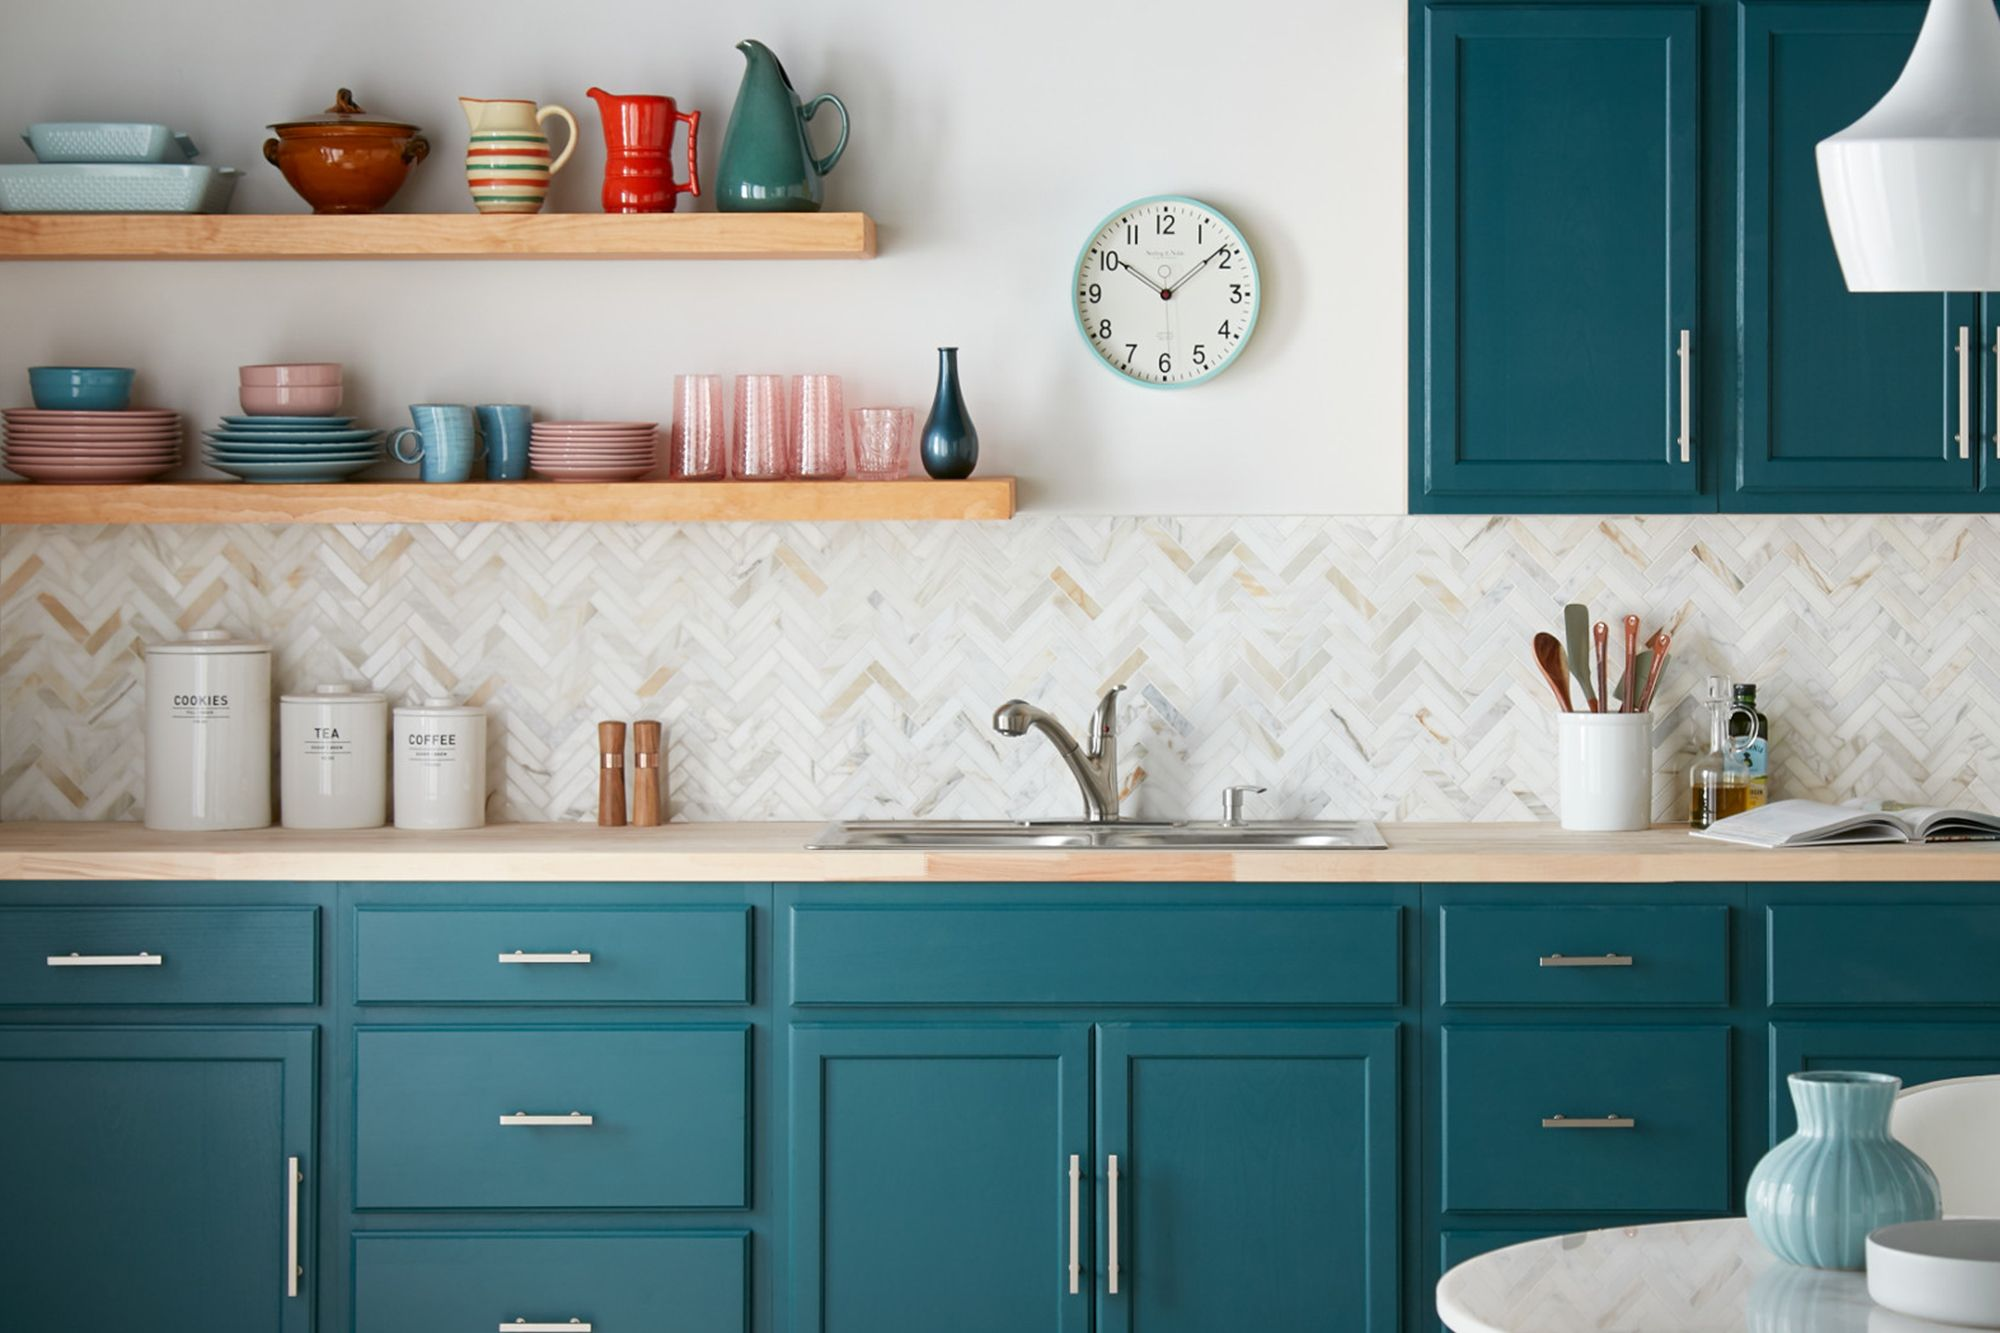 Colorful Kitchen Cabinet Transformation | Teal kitchen ...